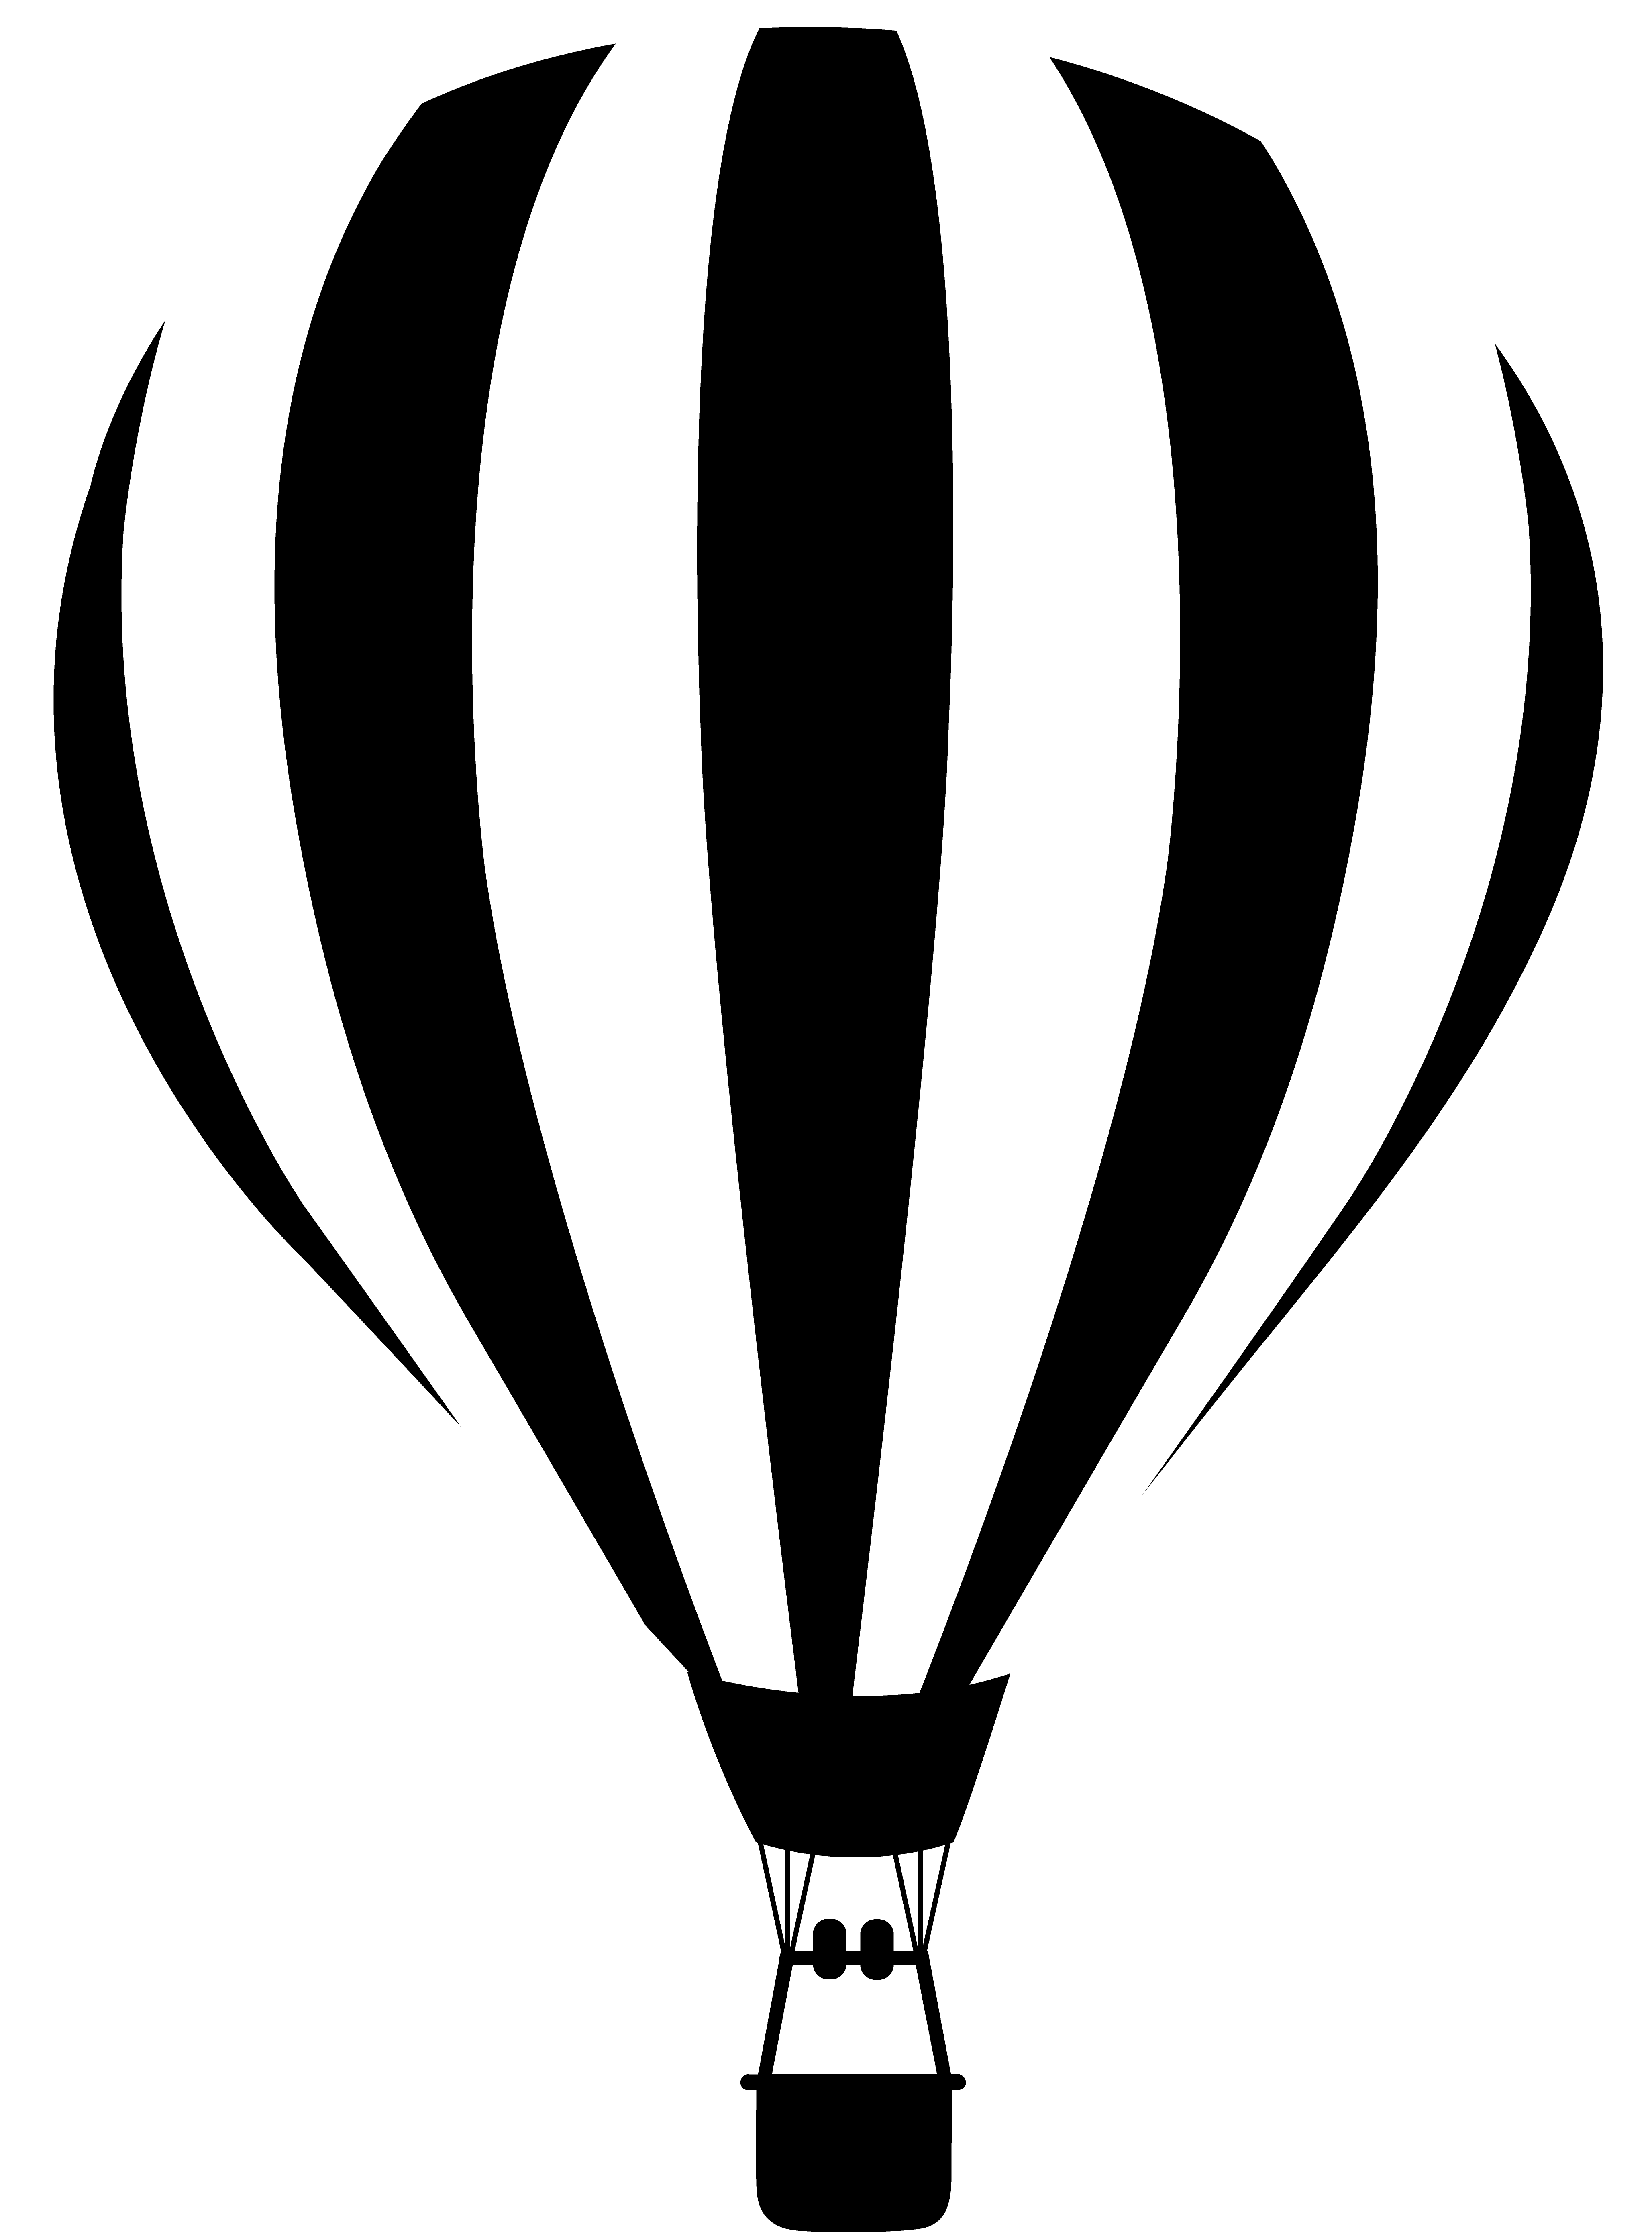 4114x5559 Black And White Hot Air Balloon Silhouette Png Clipart